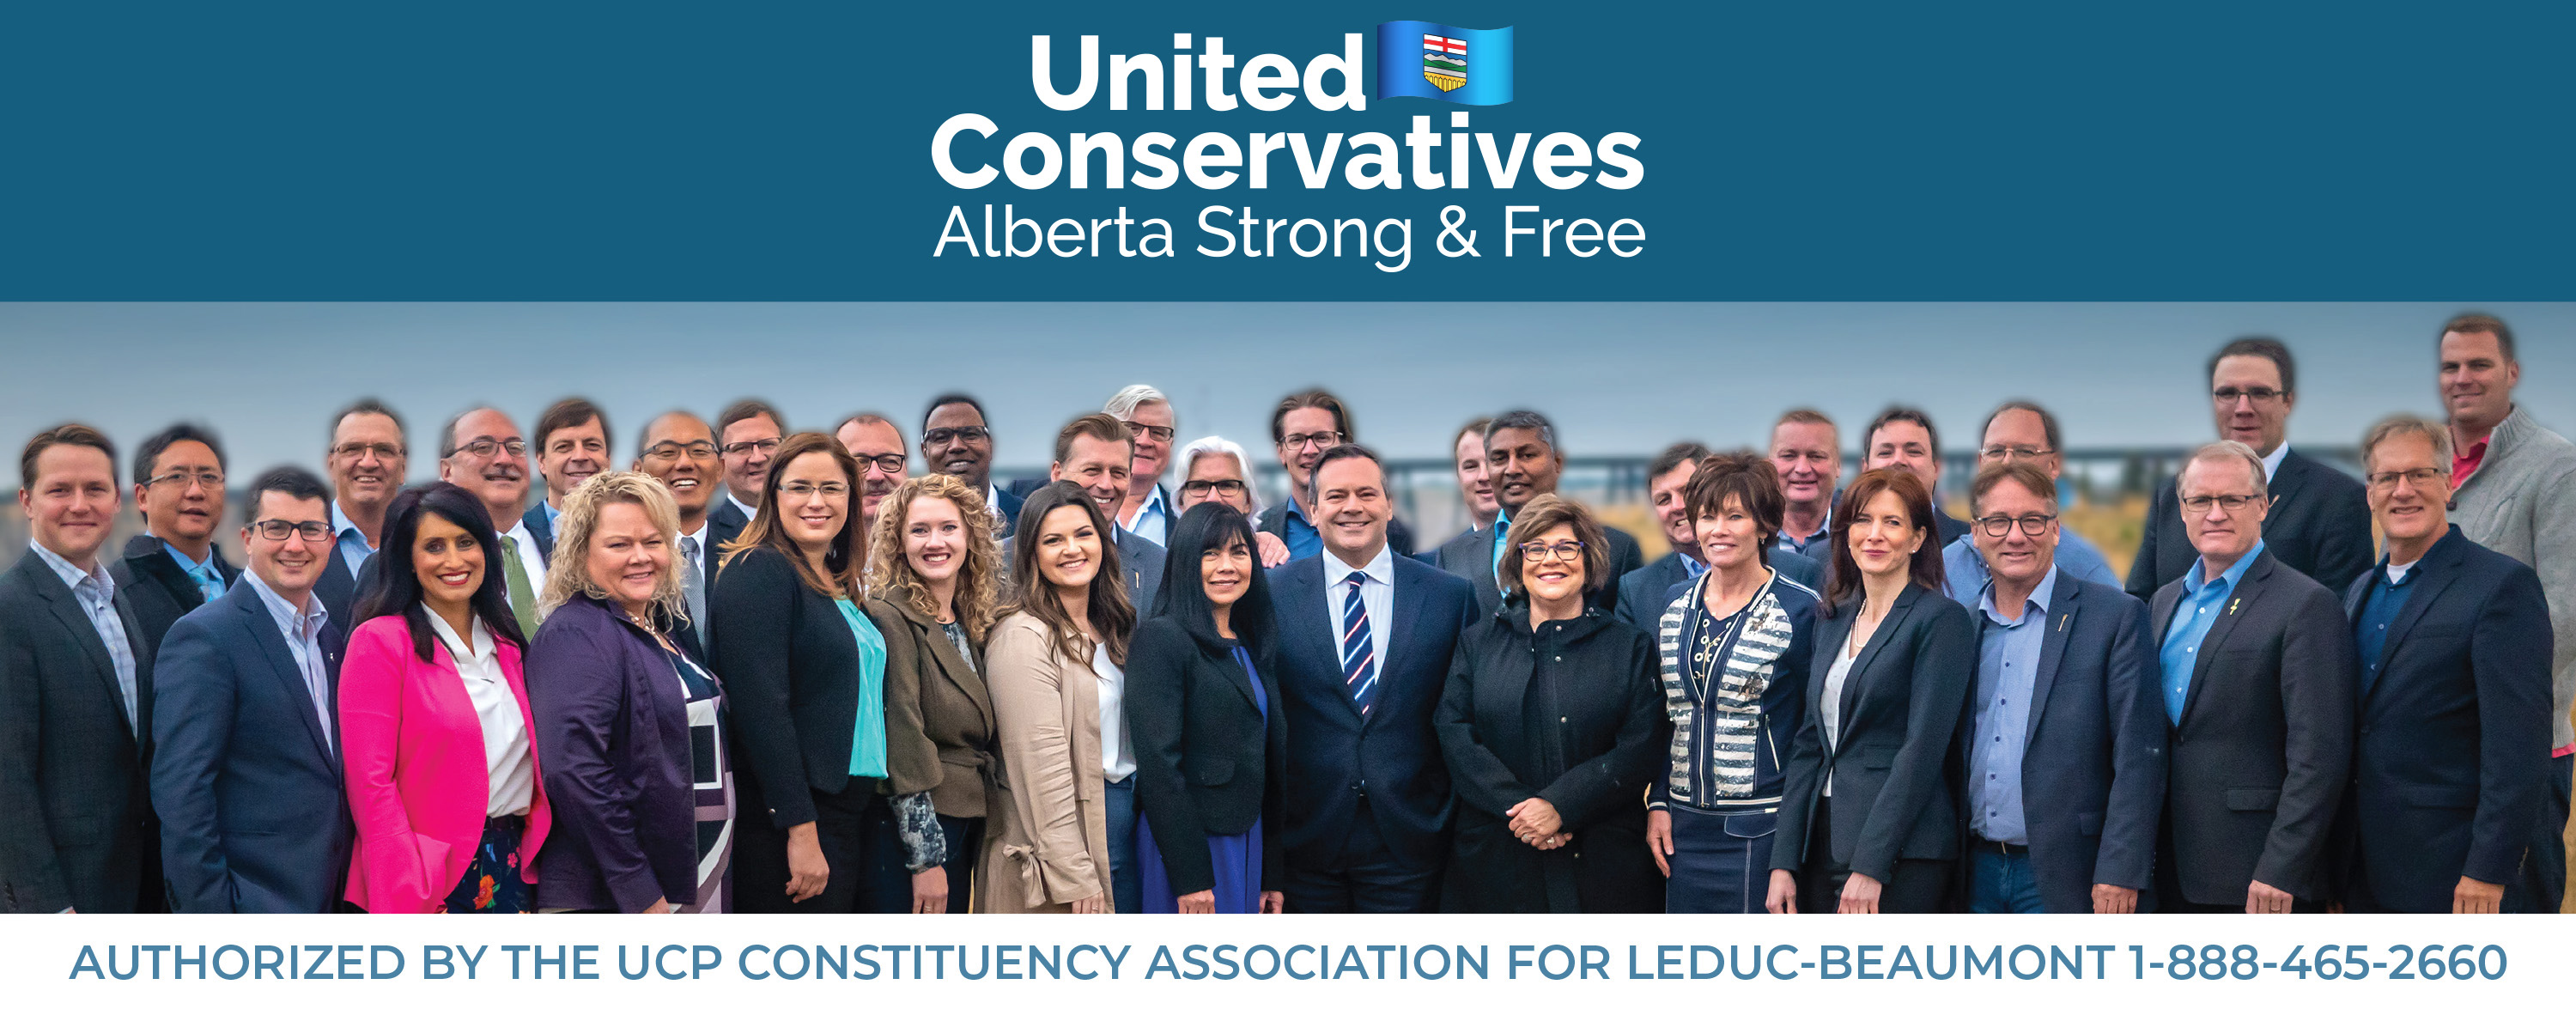 Brad Rutherford - United Conservative Party